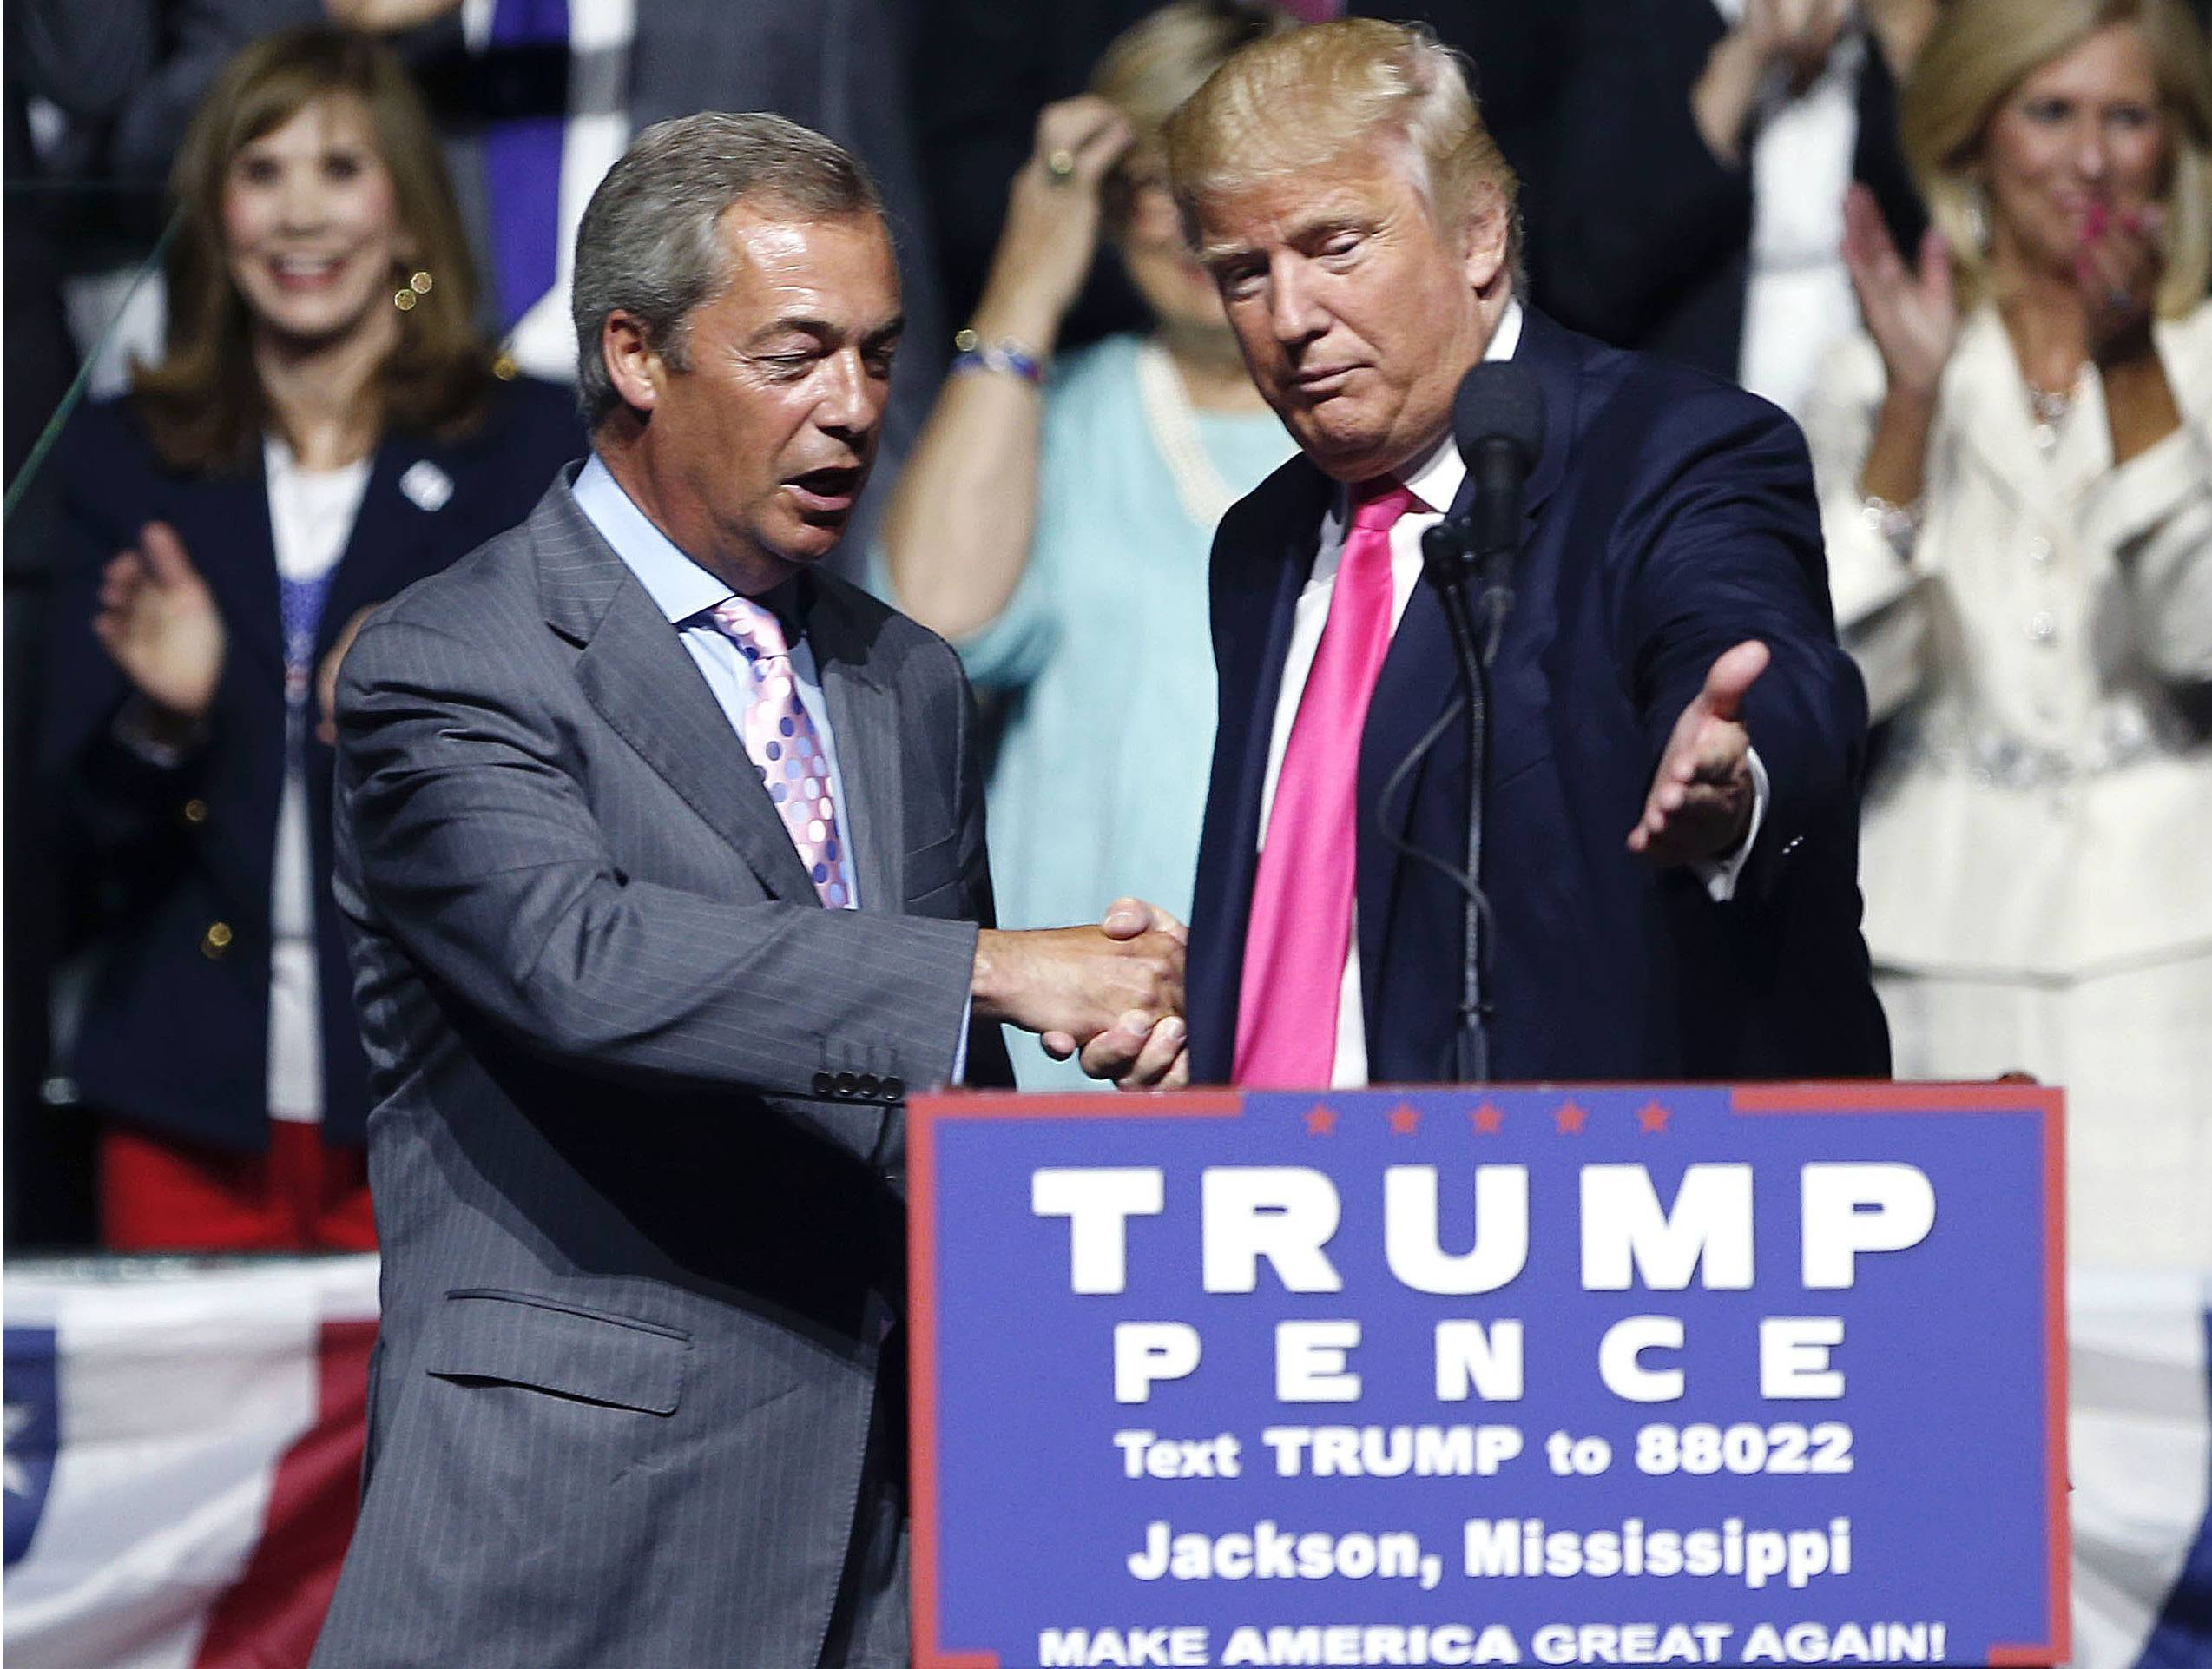 Donald Trump, right, welcomes pro-Brexit British politician Nigel Farage, to speak at a campaign rally in Jackson, Miss. Britain's vote to leave the European Union was a major shock to the global political system. But in a year of political earthquakes, it has just been trumped. Like Brexit, Donald Trump's victory over Hillary Clinton in the U.S. presidential election was driven by voters turning against established order and mainstream politicians.